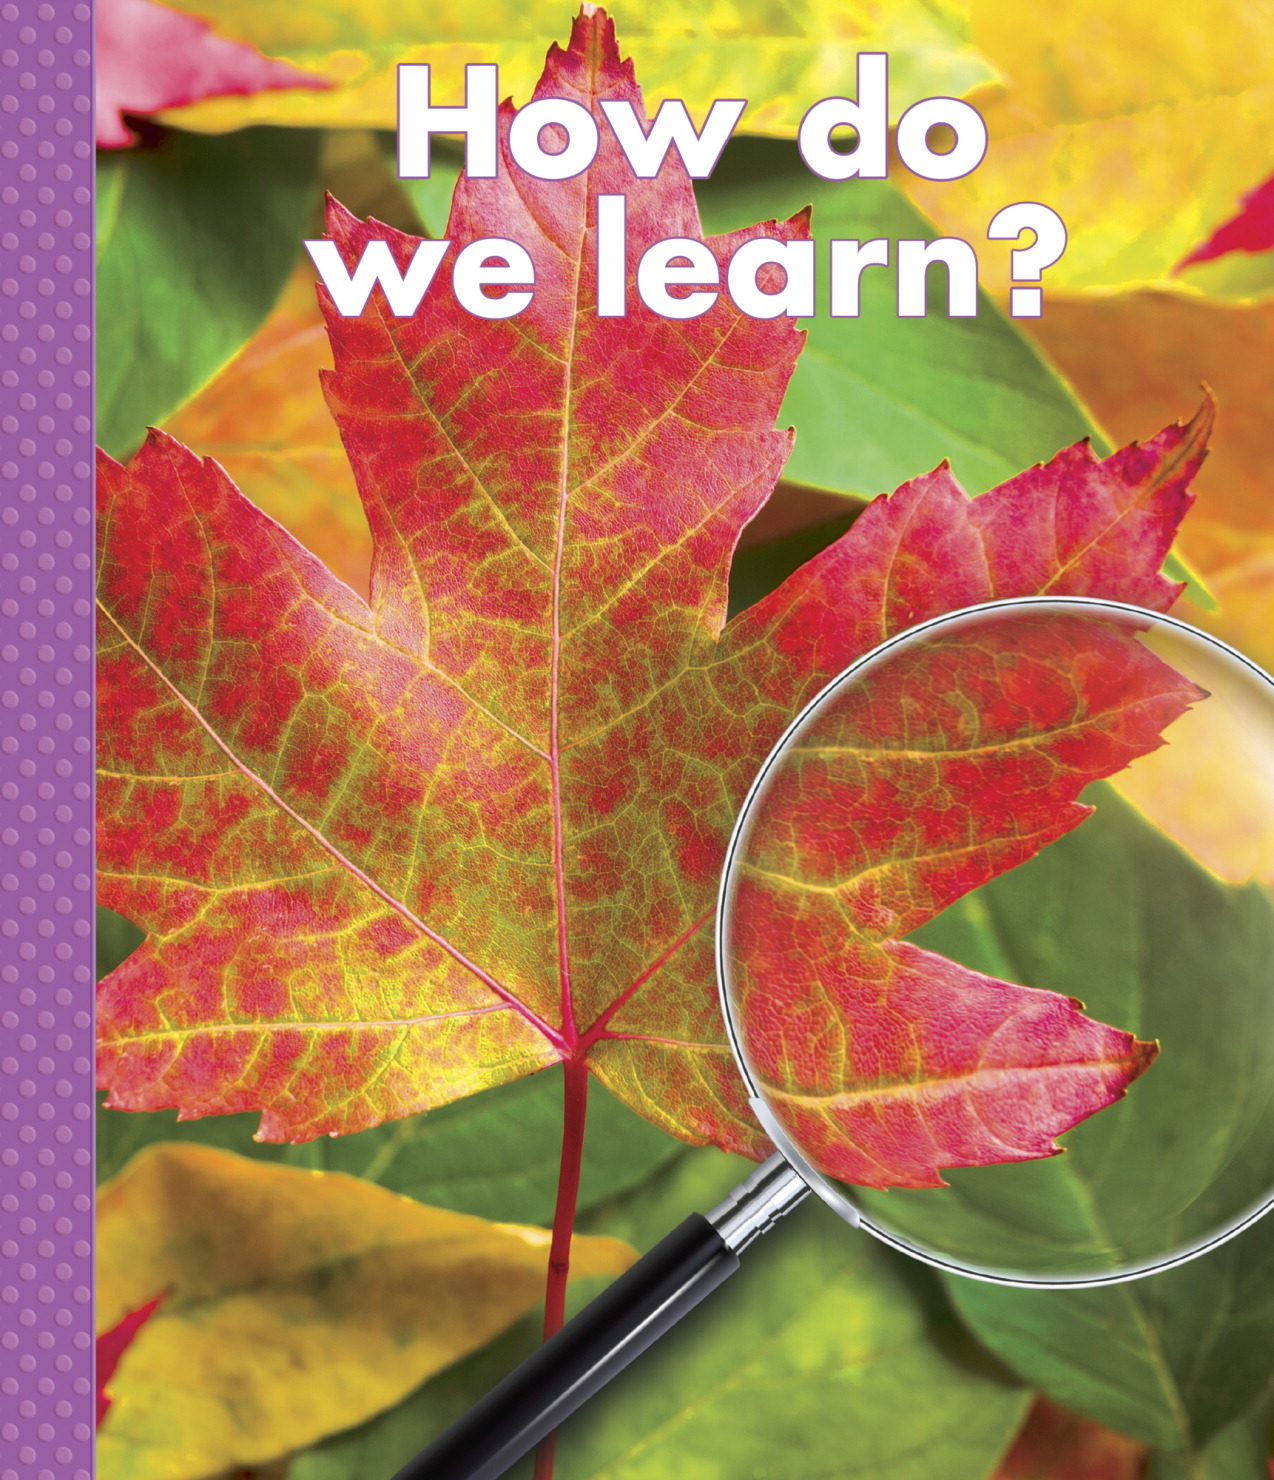 Delta Science Readers How do We Learn? Paperback Big Book, Grade K - 8, 18-3/4 in H X 16 in W, 16 Pages